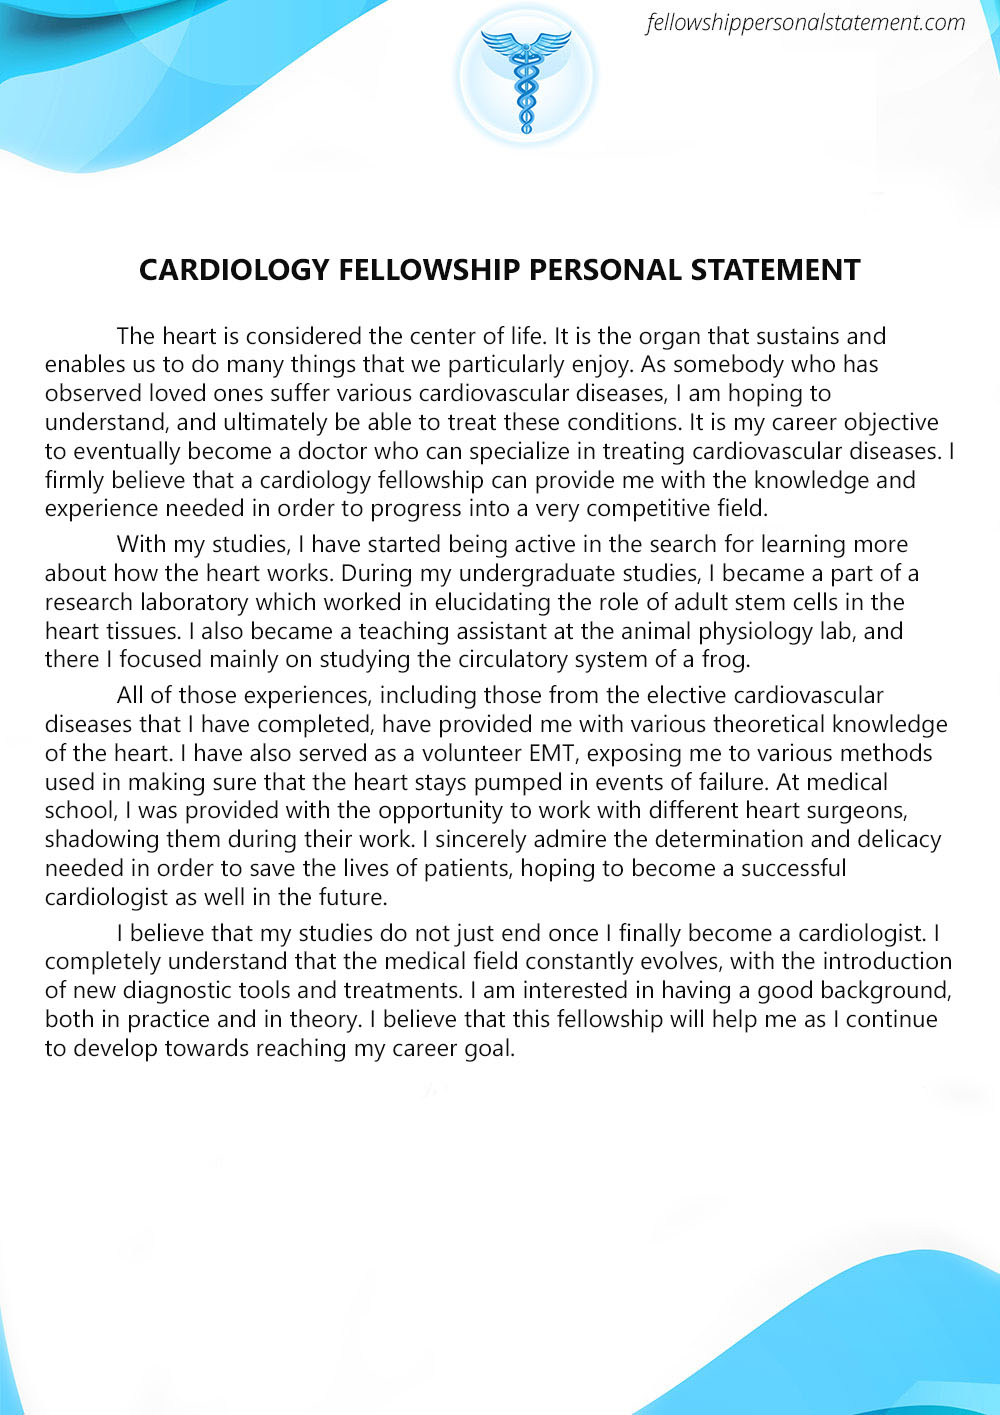 Exceptional Cardiology Fellowship Personal Statement Writing